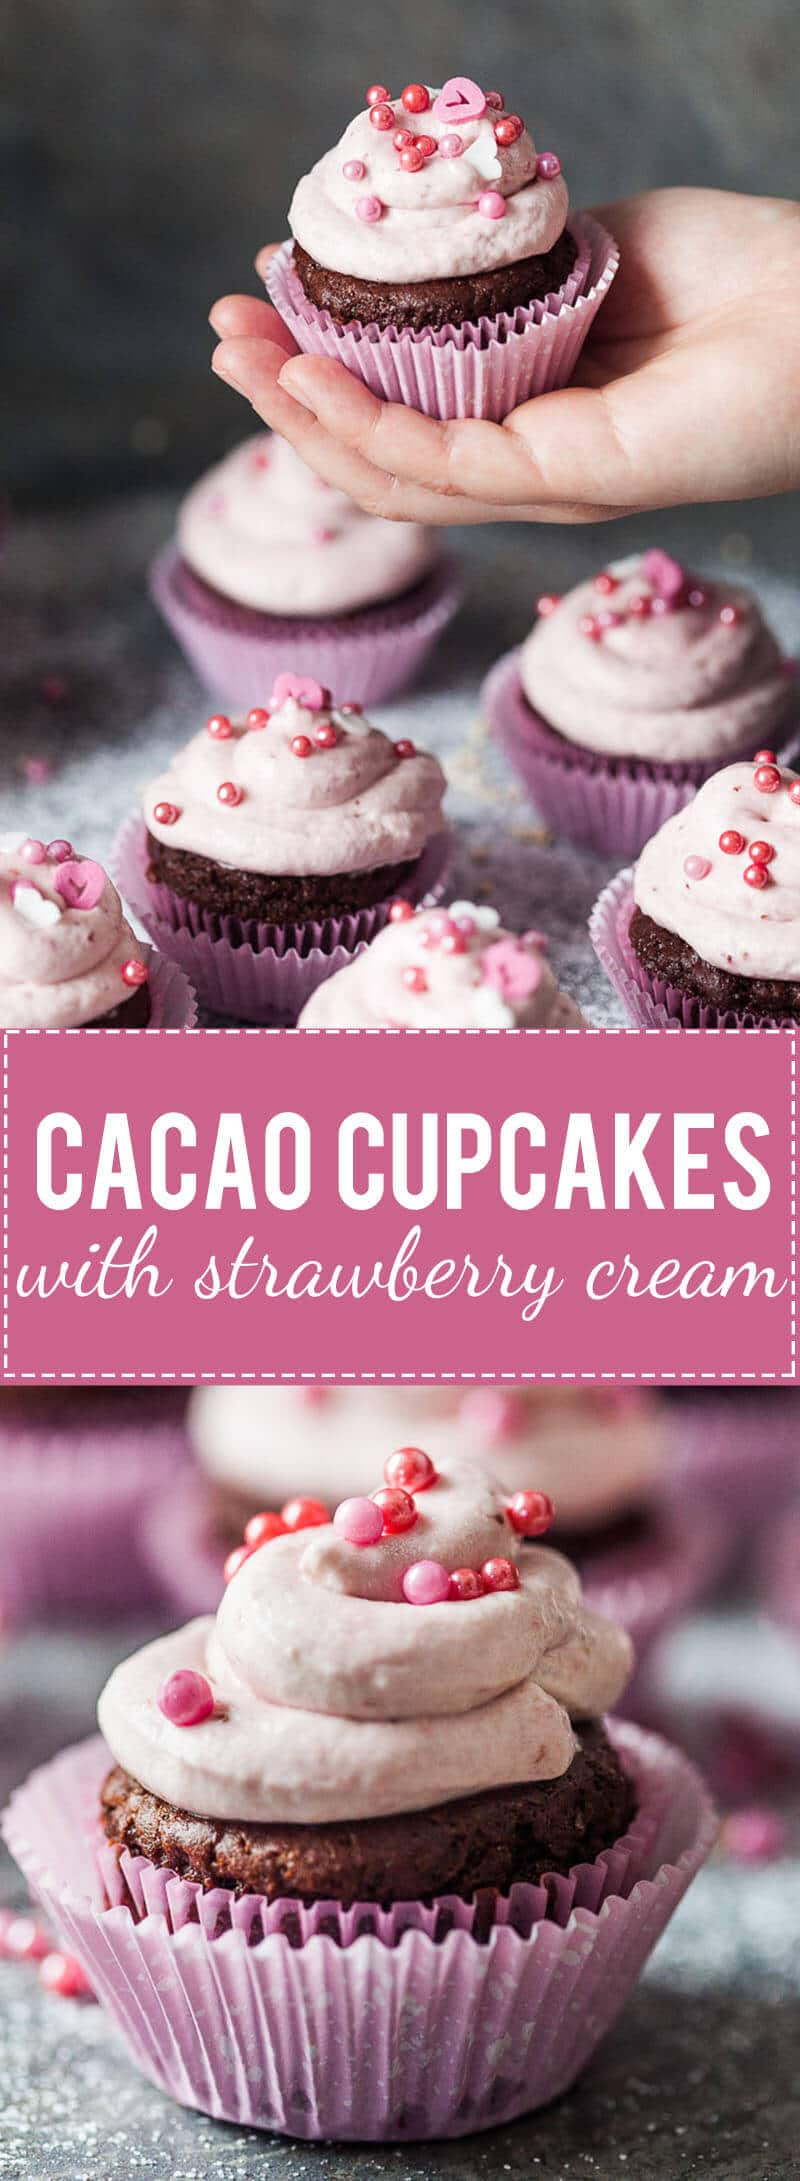 Surprise your loved one with these Easy Cacao Cupcakes with Strawberry Cream. Vegan base and a delicious strawberry cream! | www.vibrantplate.com